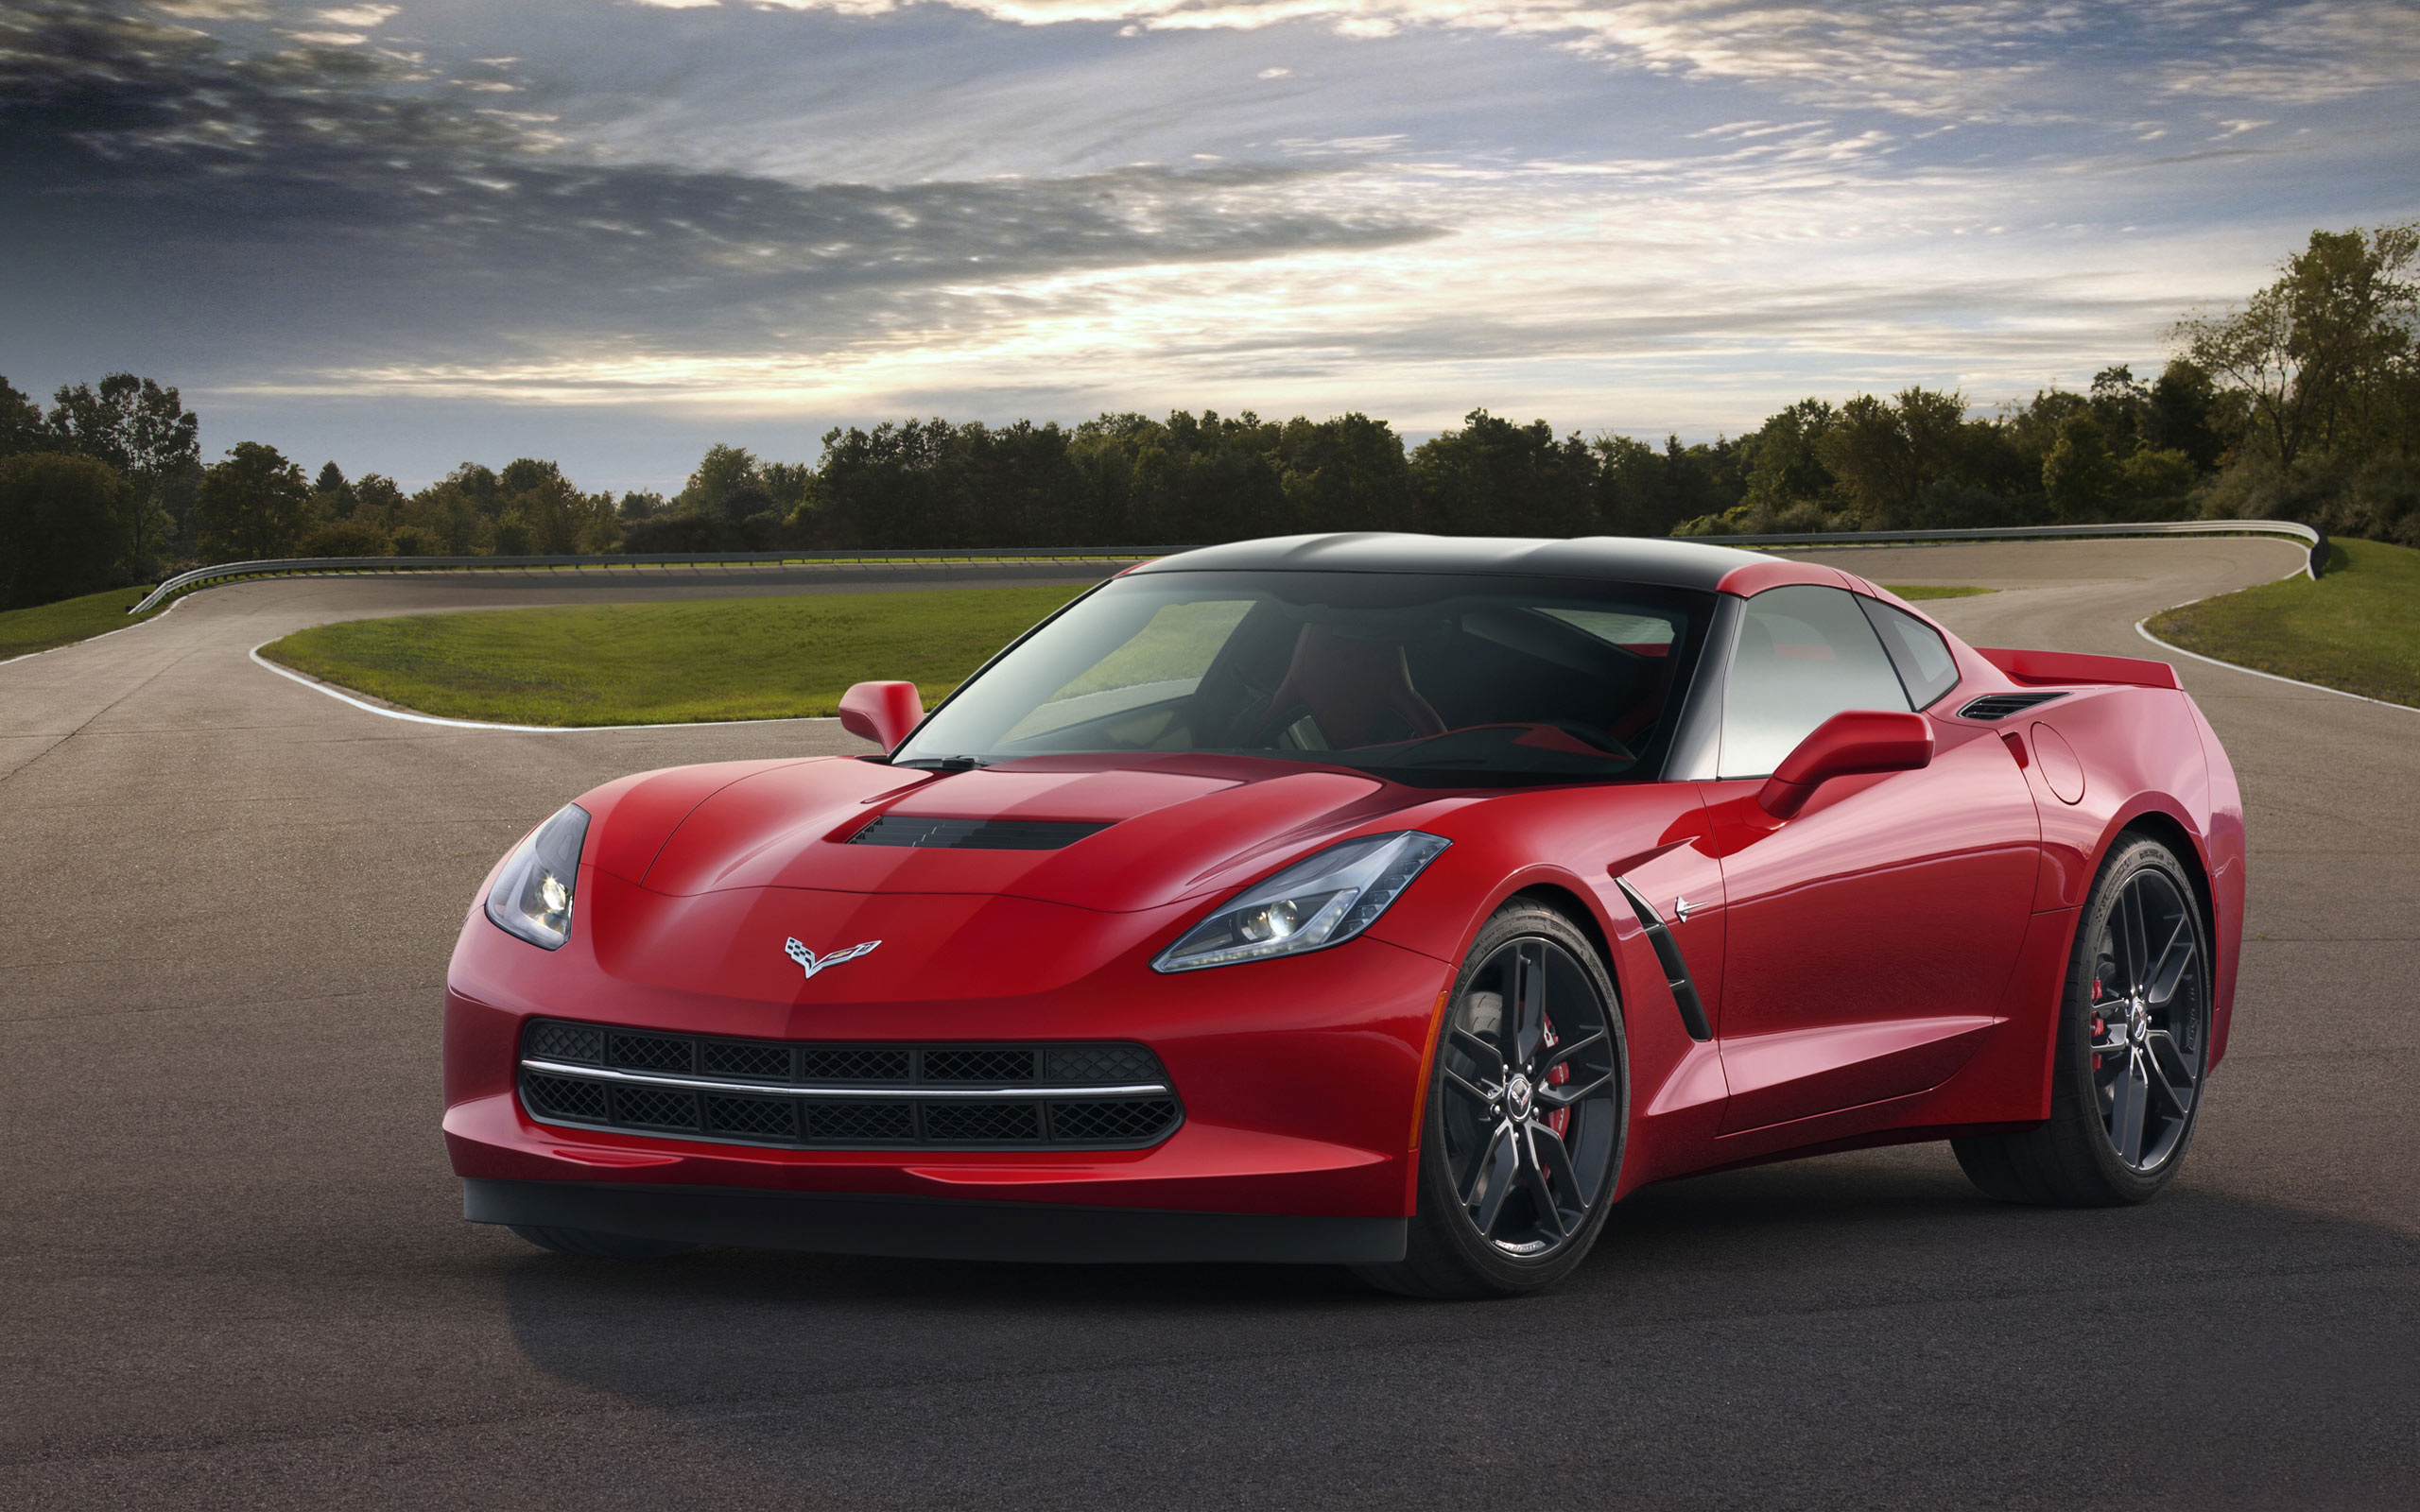 2014 chevrolet corvette c7 stingray wallpaper hd car wallpapers